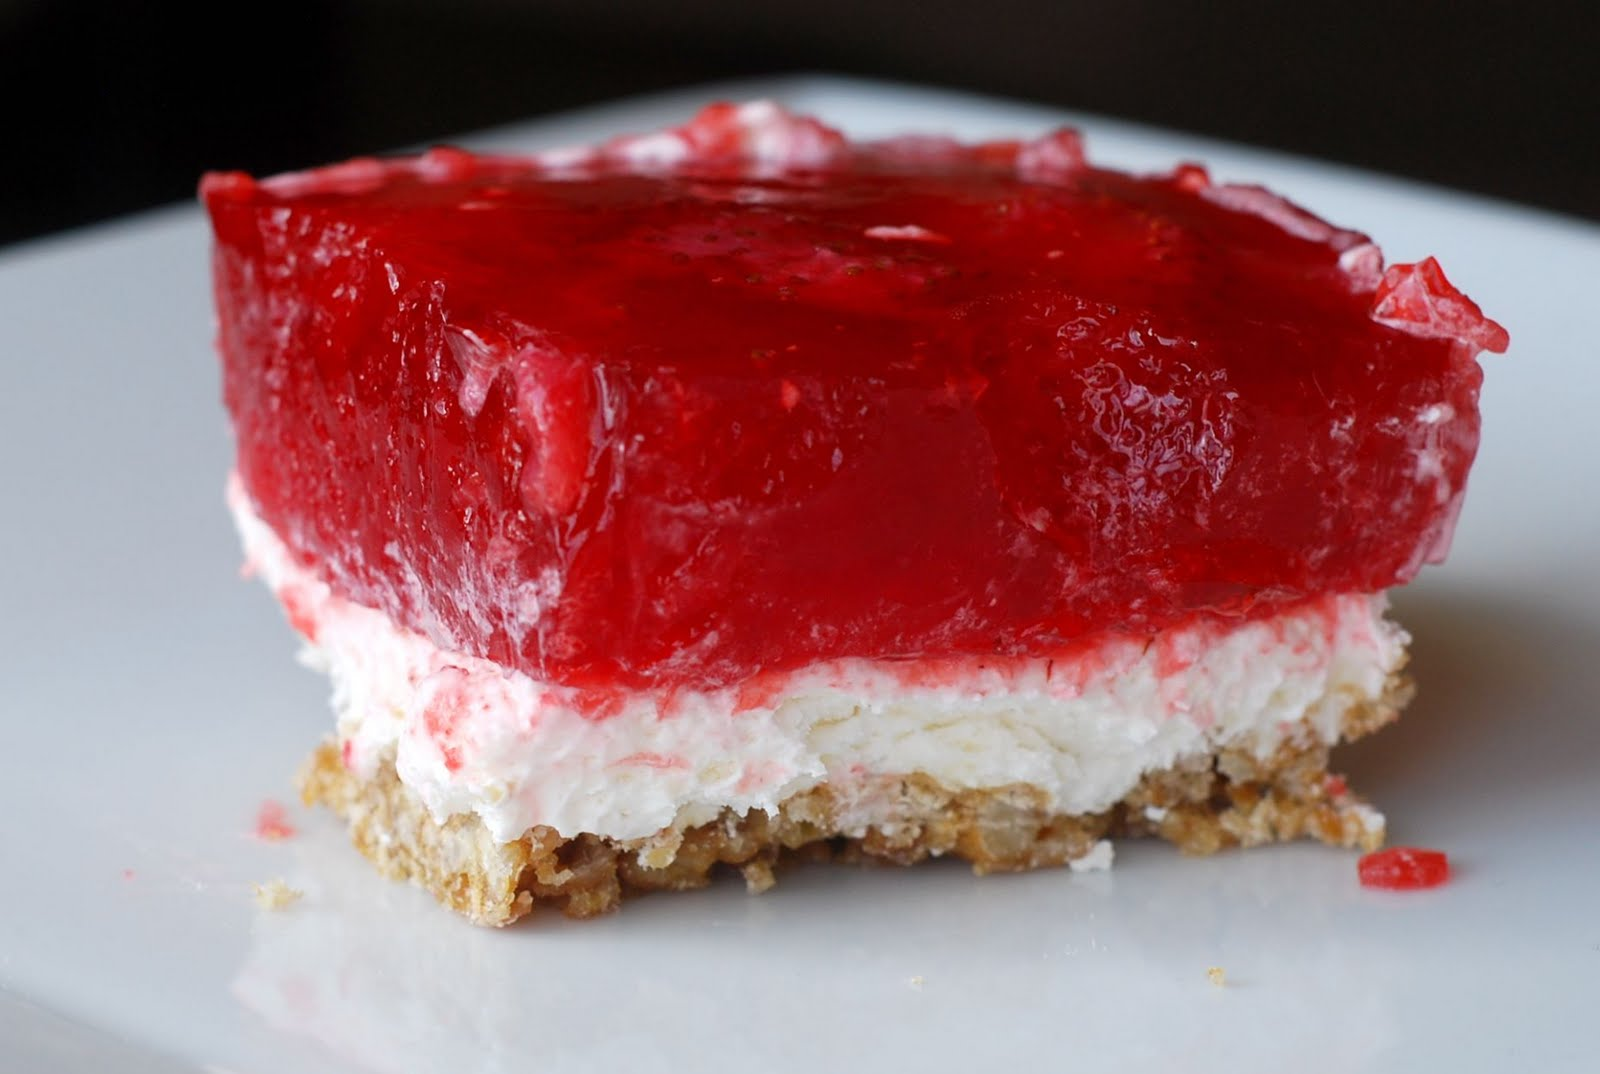 See Jane in the kitchen: Strawberry Pretzel Salad